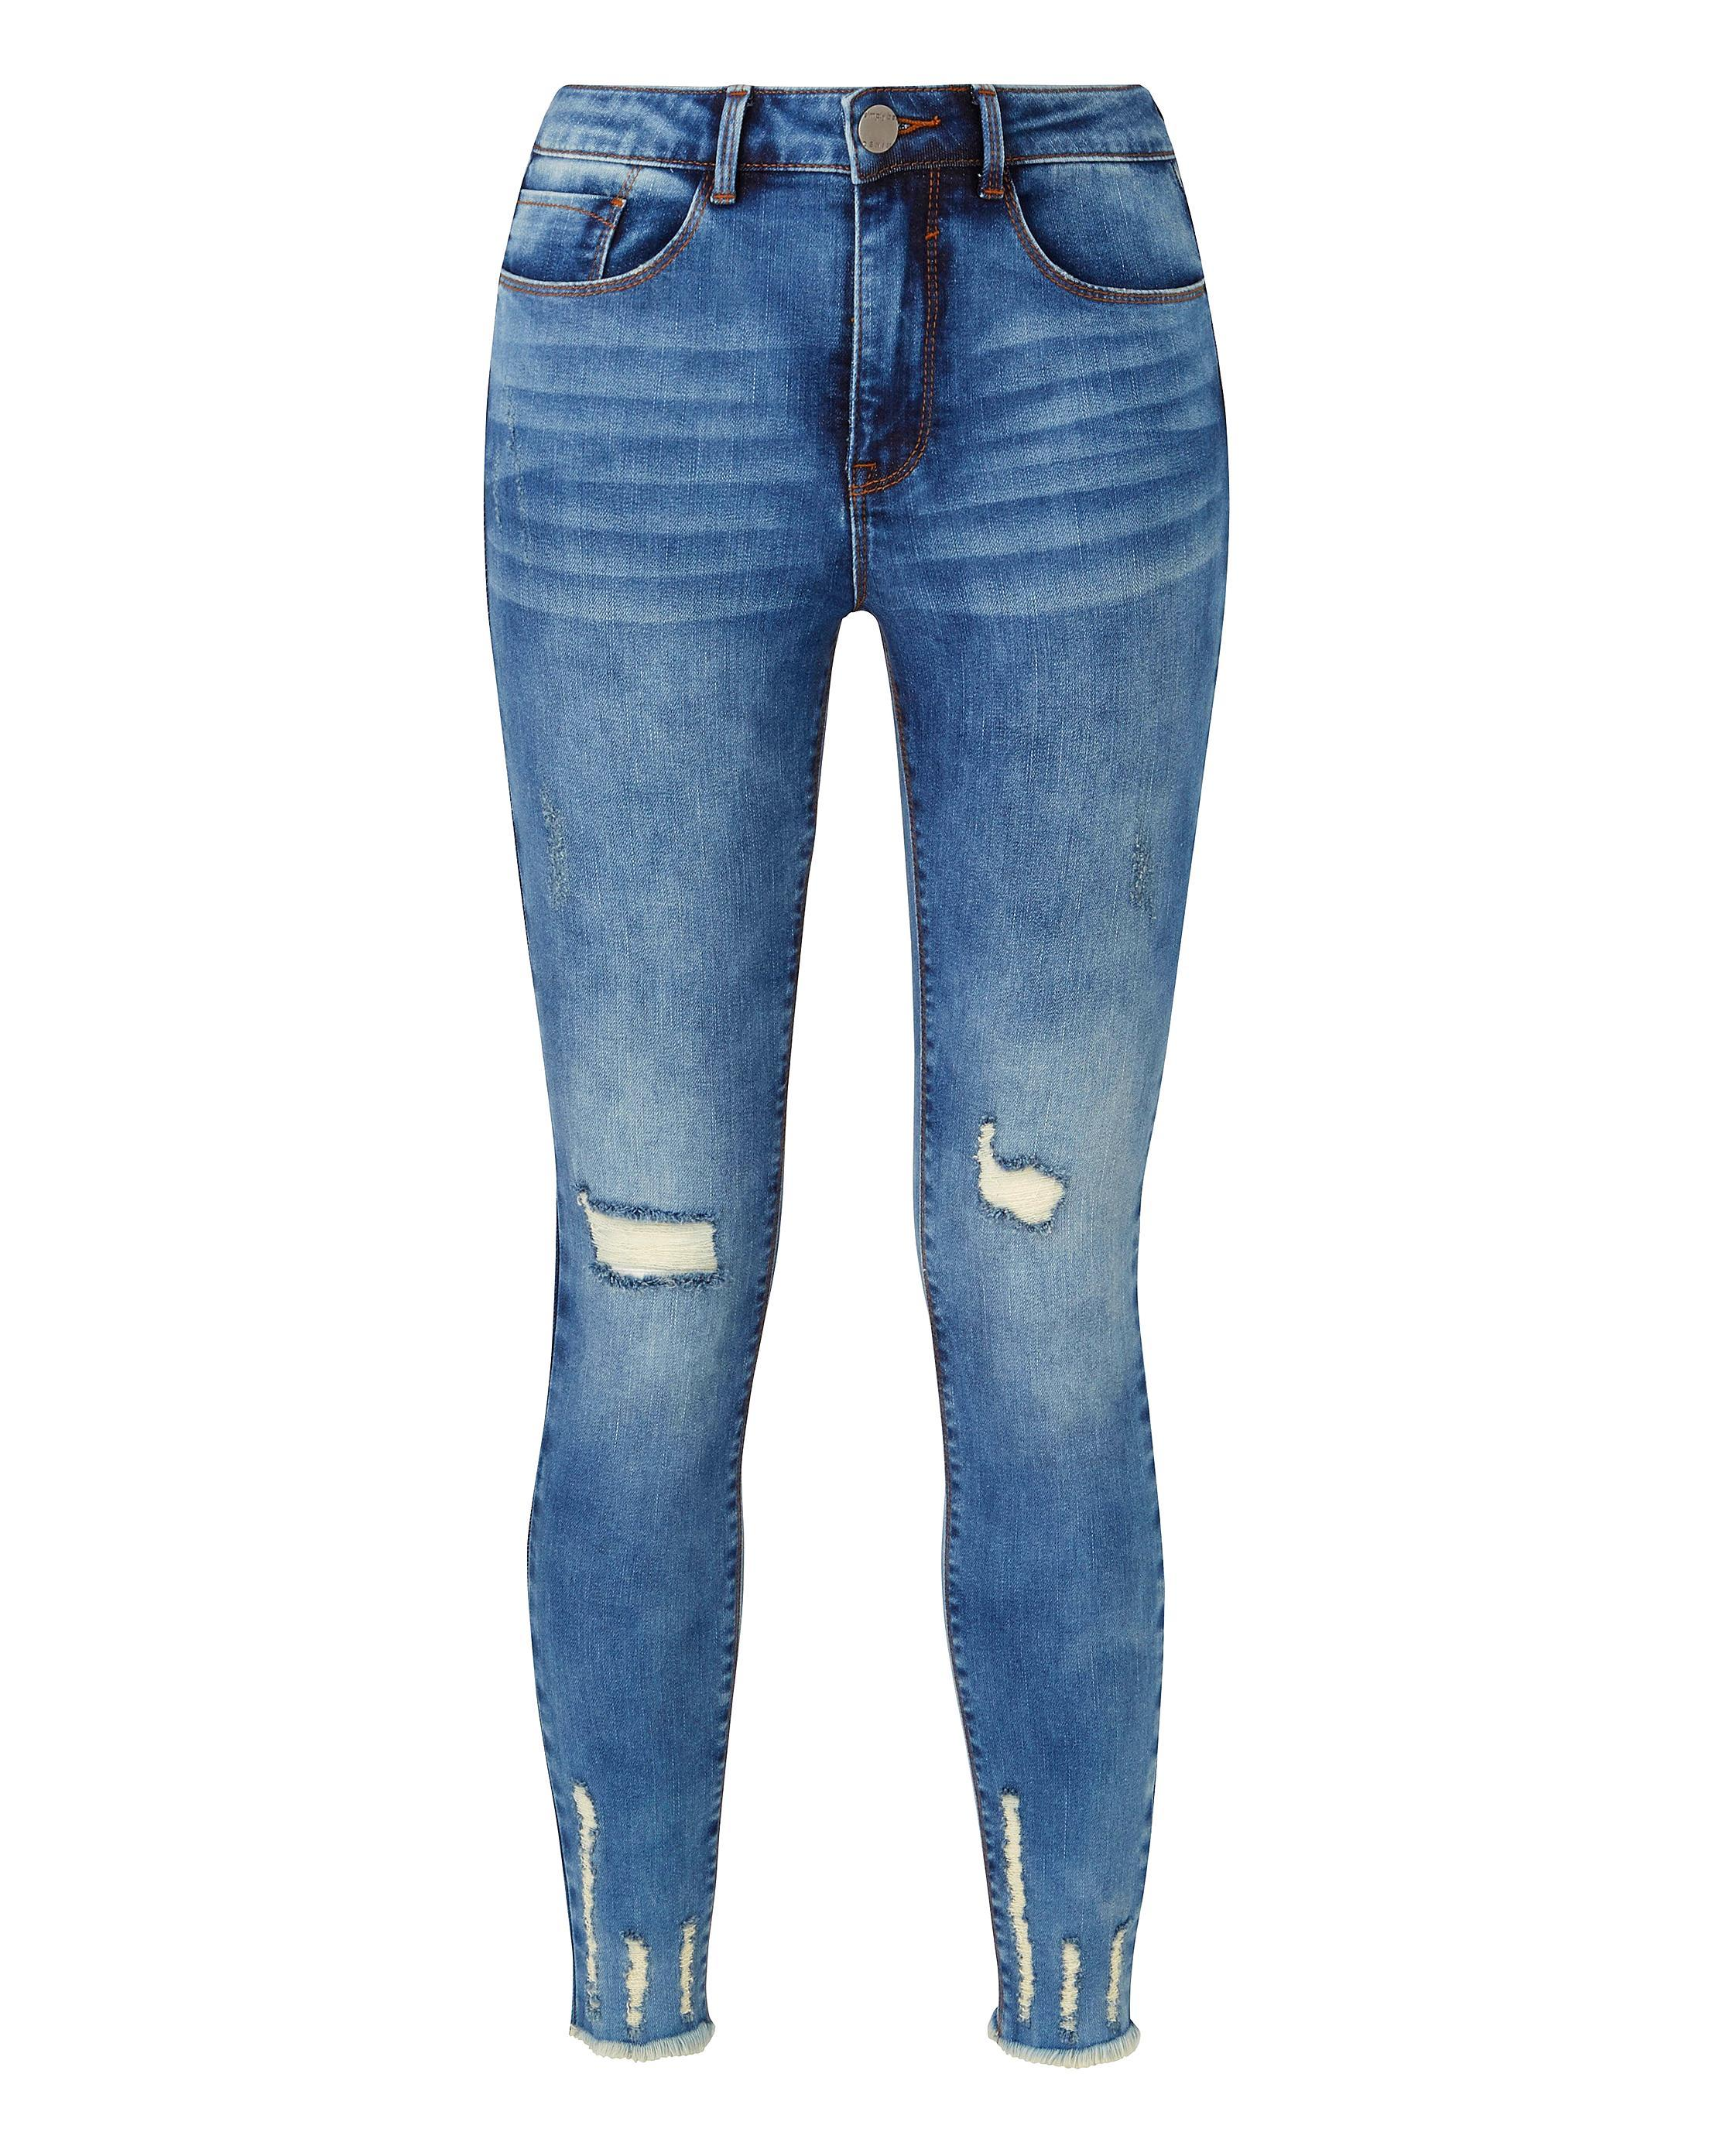 41f9a56d8f2 Lyst - Simply Be Chloe Chewed Low Hem High Waist Skinny Jeans in Blue